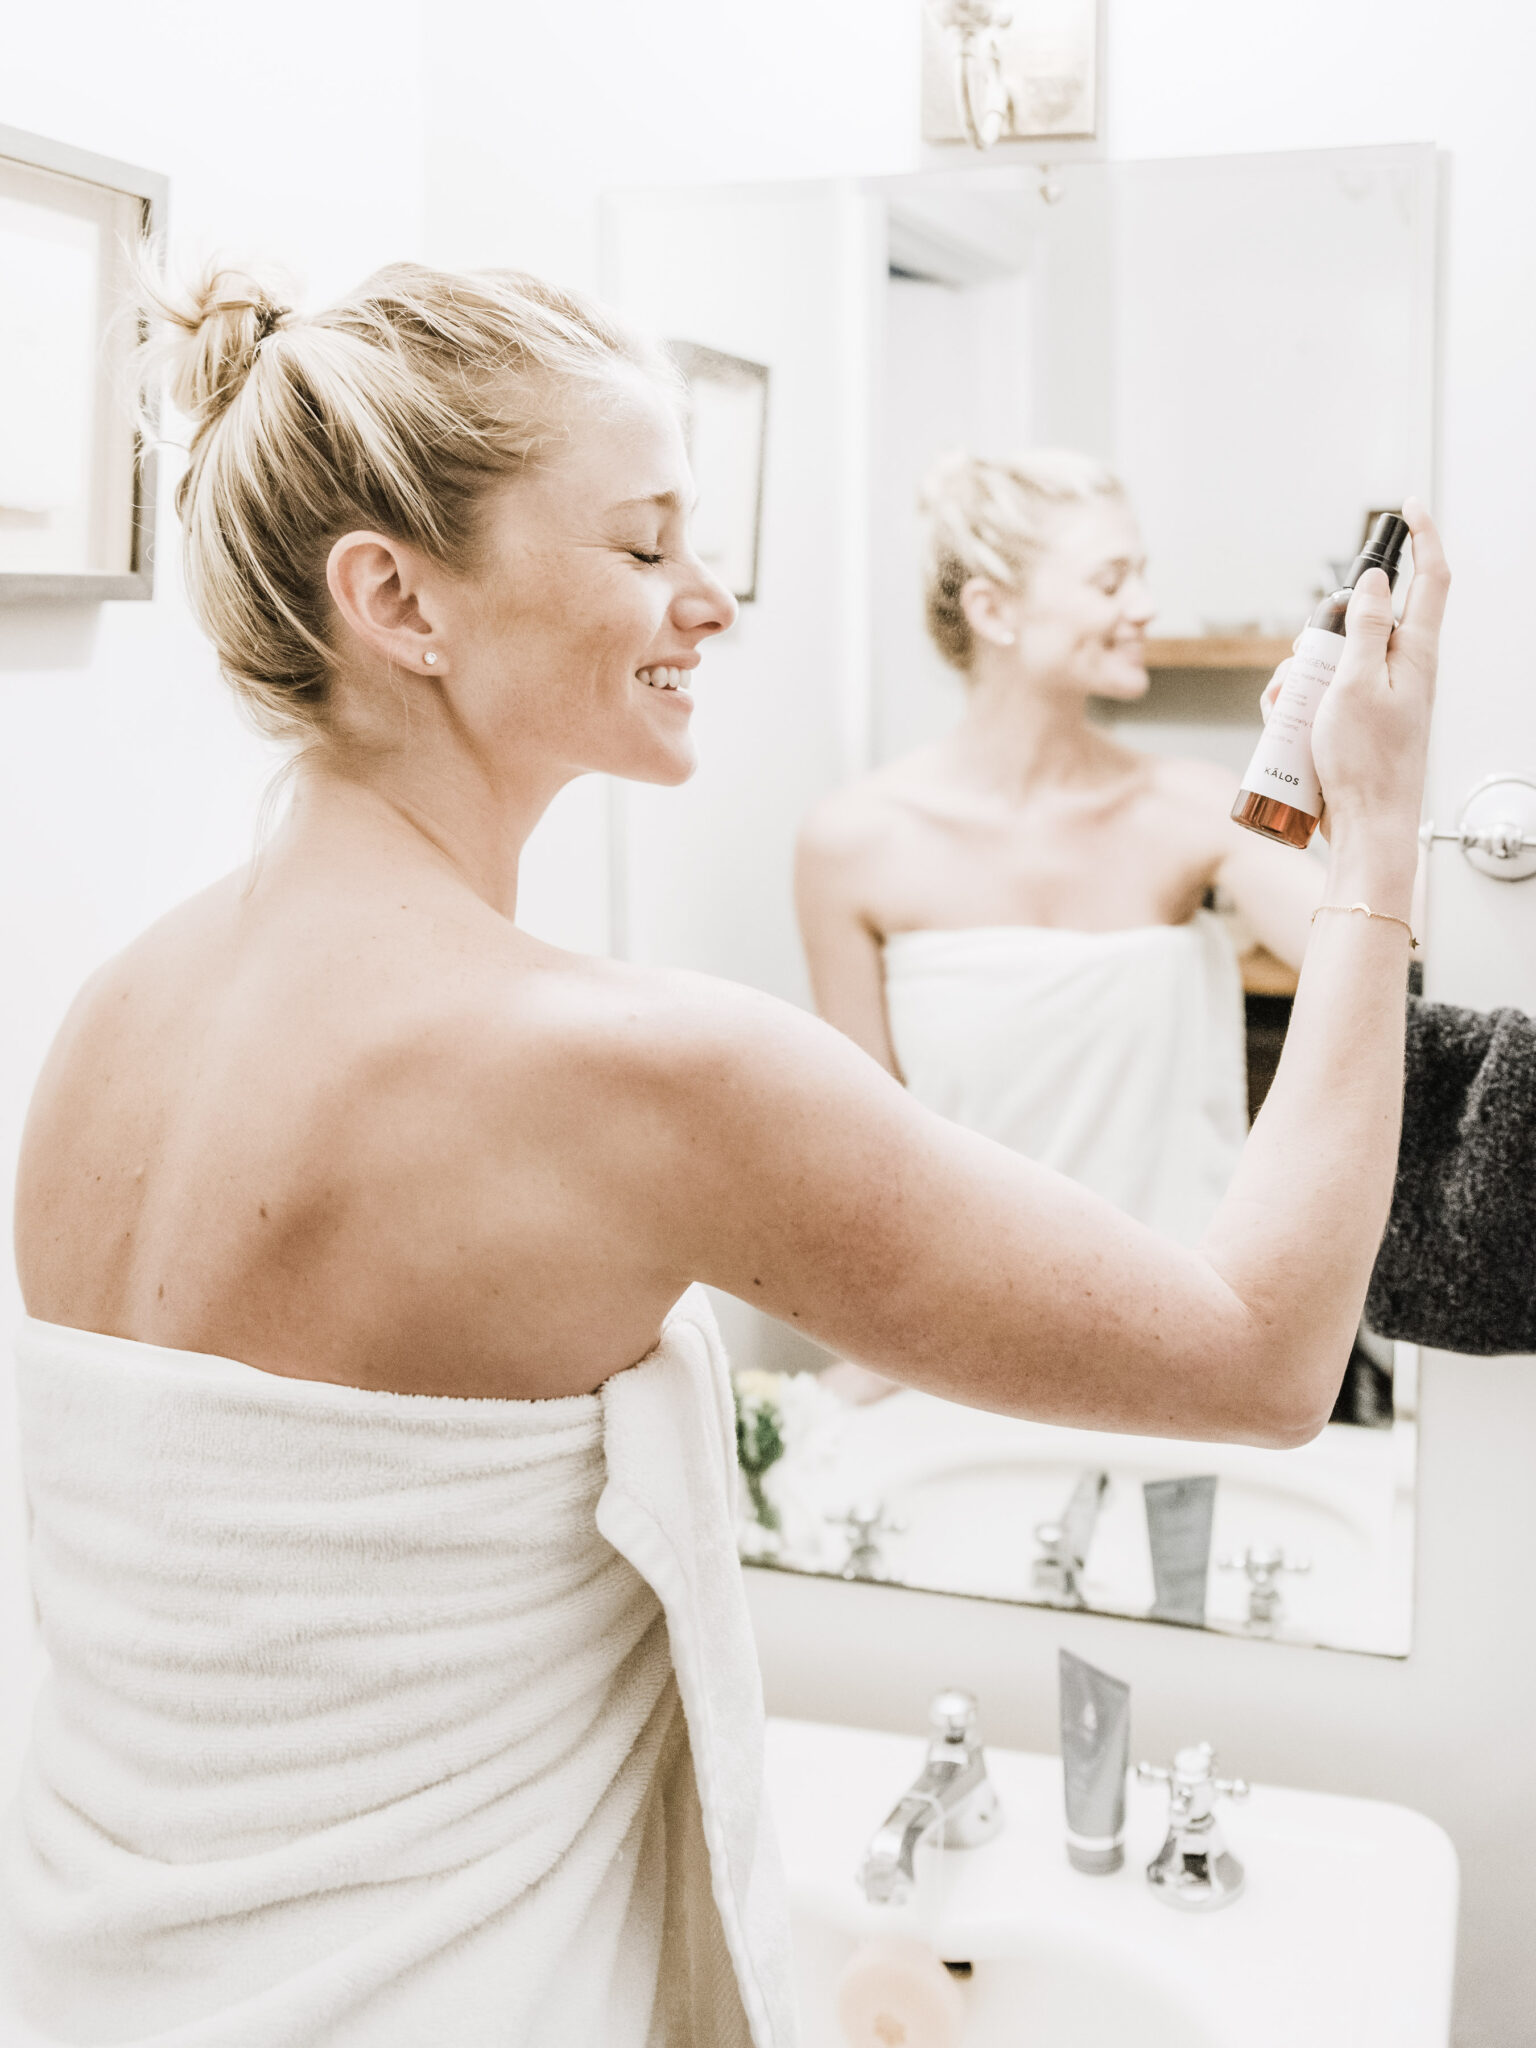 Woman sprays her face with skincare products in the bathroom. This article covers the real cost of beauty in 2021.